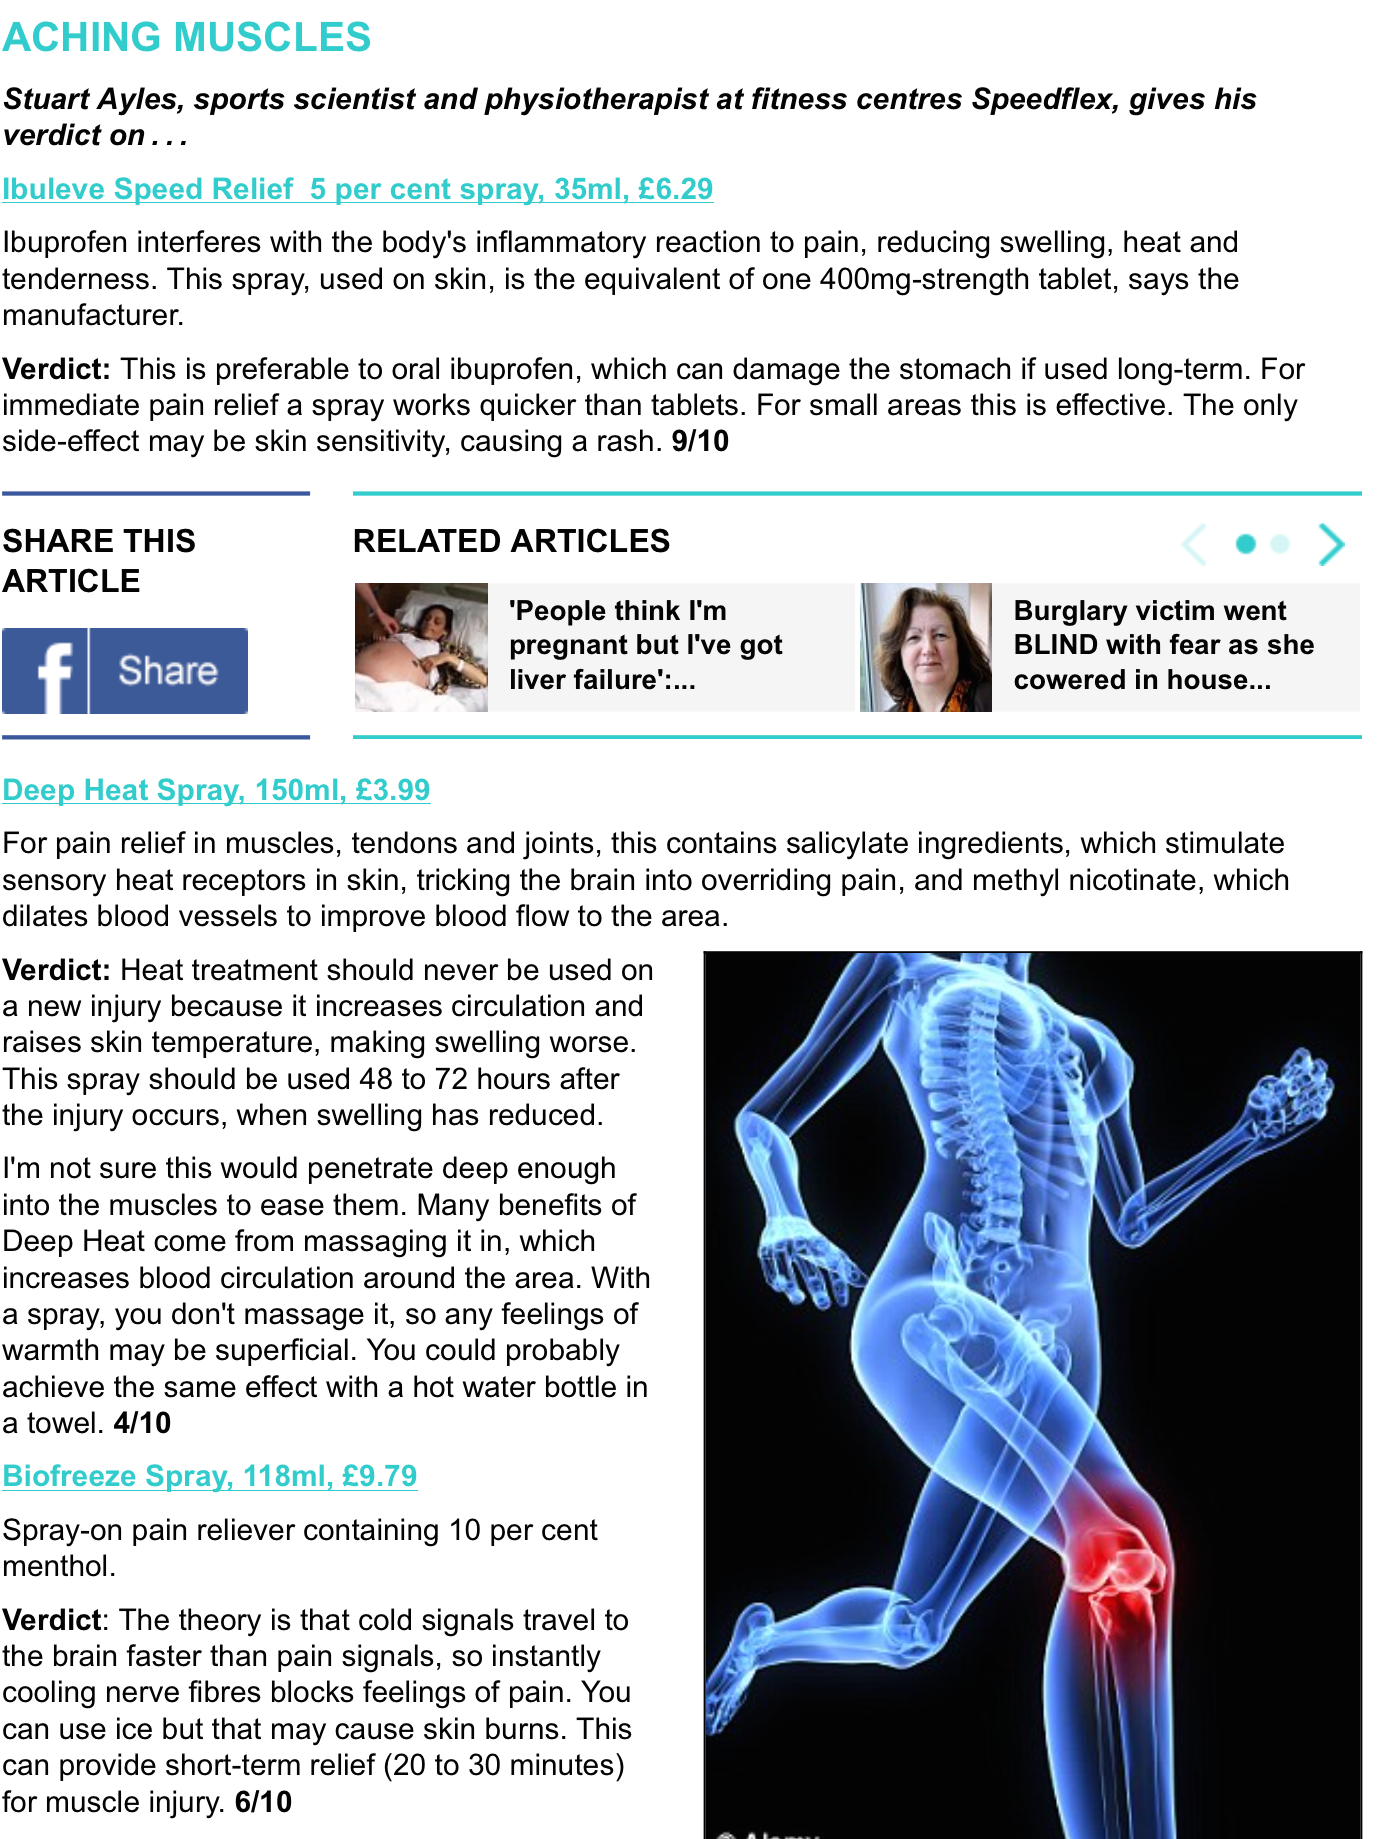 DAILY MAIL GOOD HEALTH